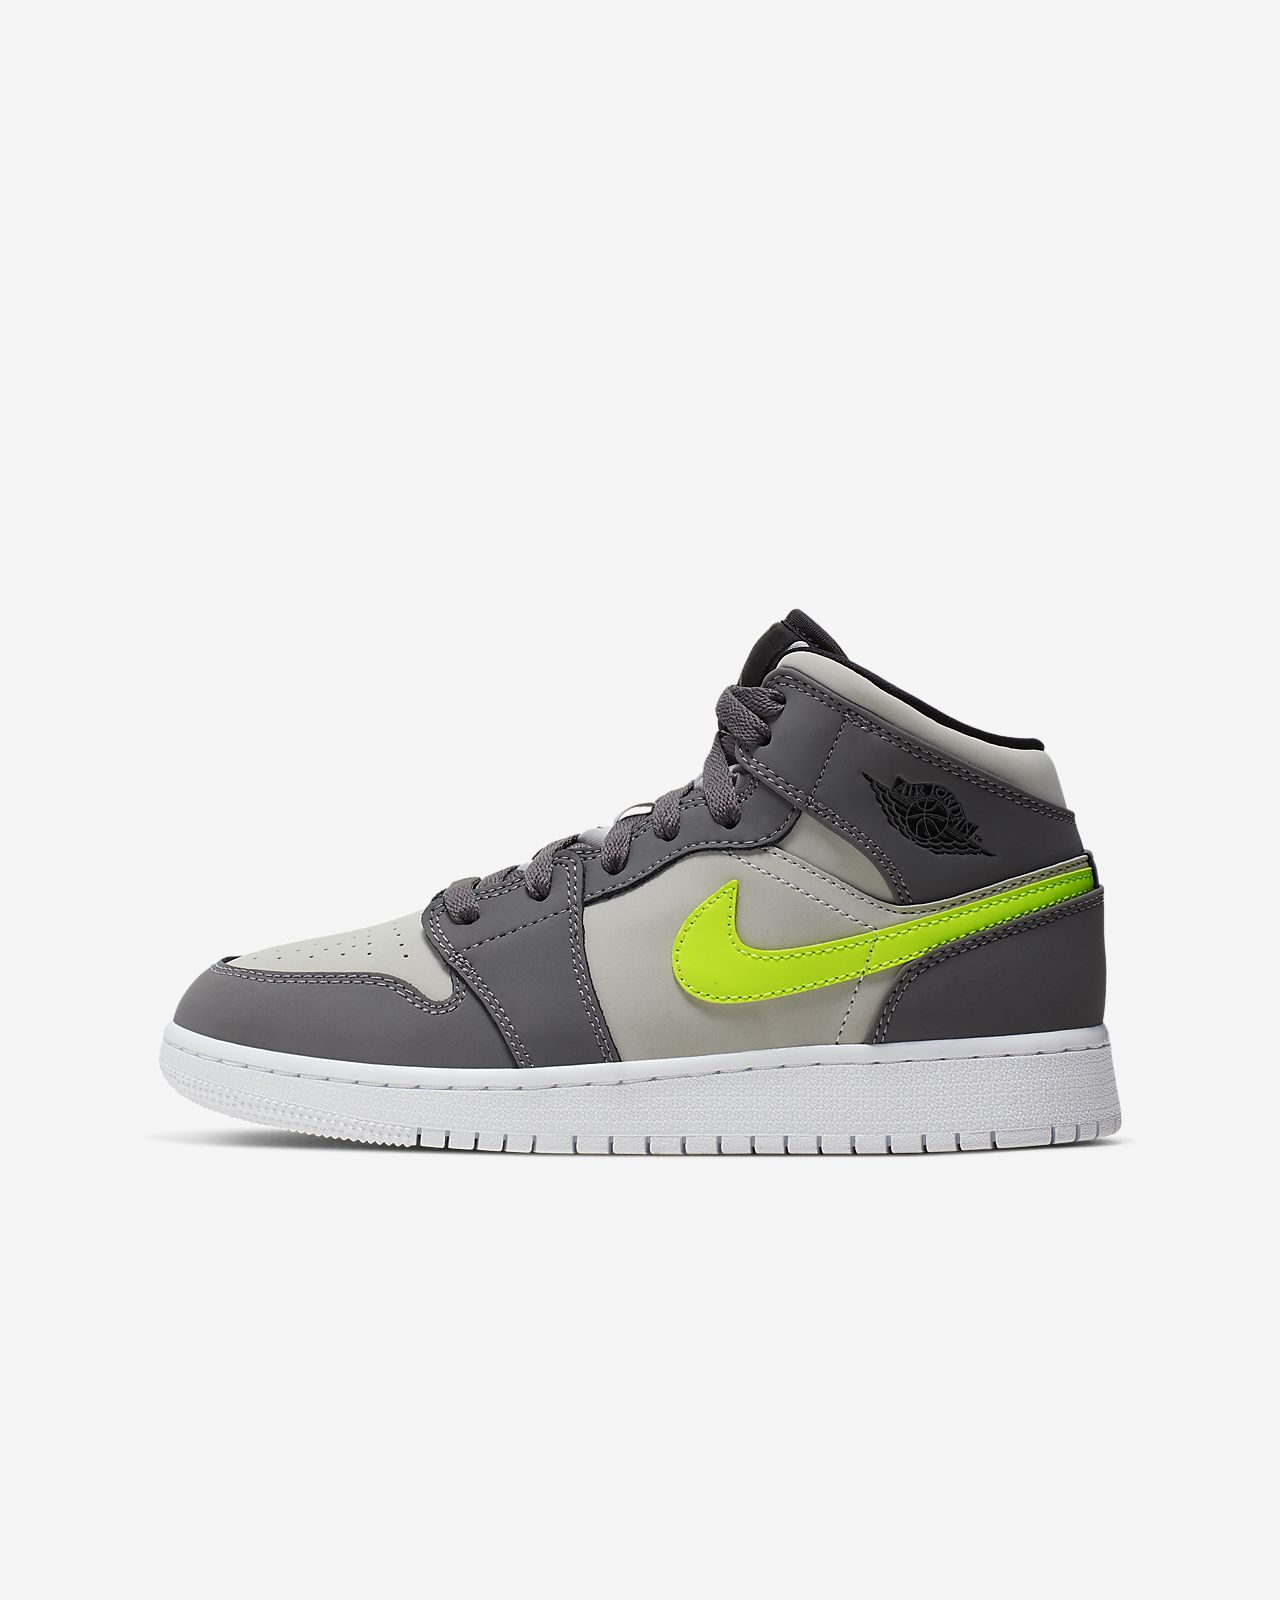 Nike NIKE Air Jordan sneakers Womens AIR JORDAN 1 MID BG Air Jordan 1 mid 554725 028 shoes black